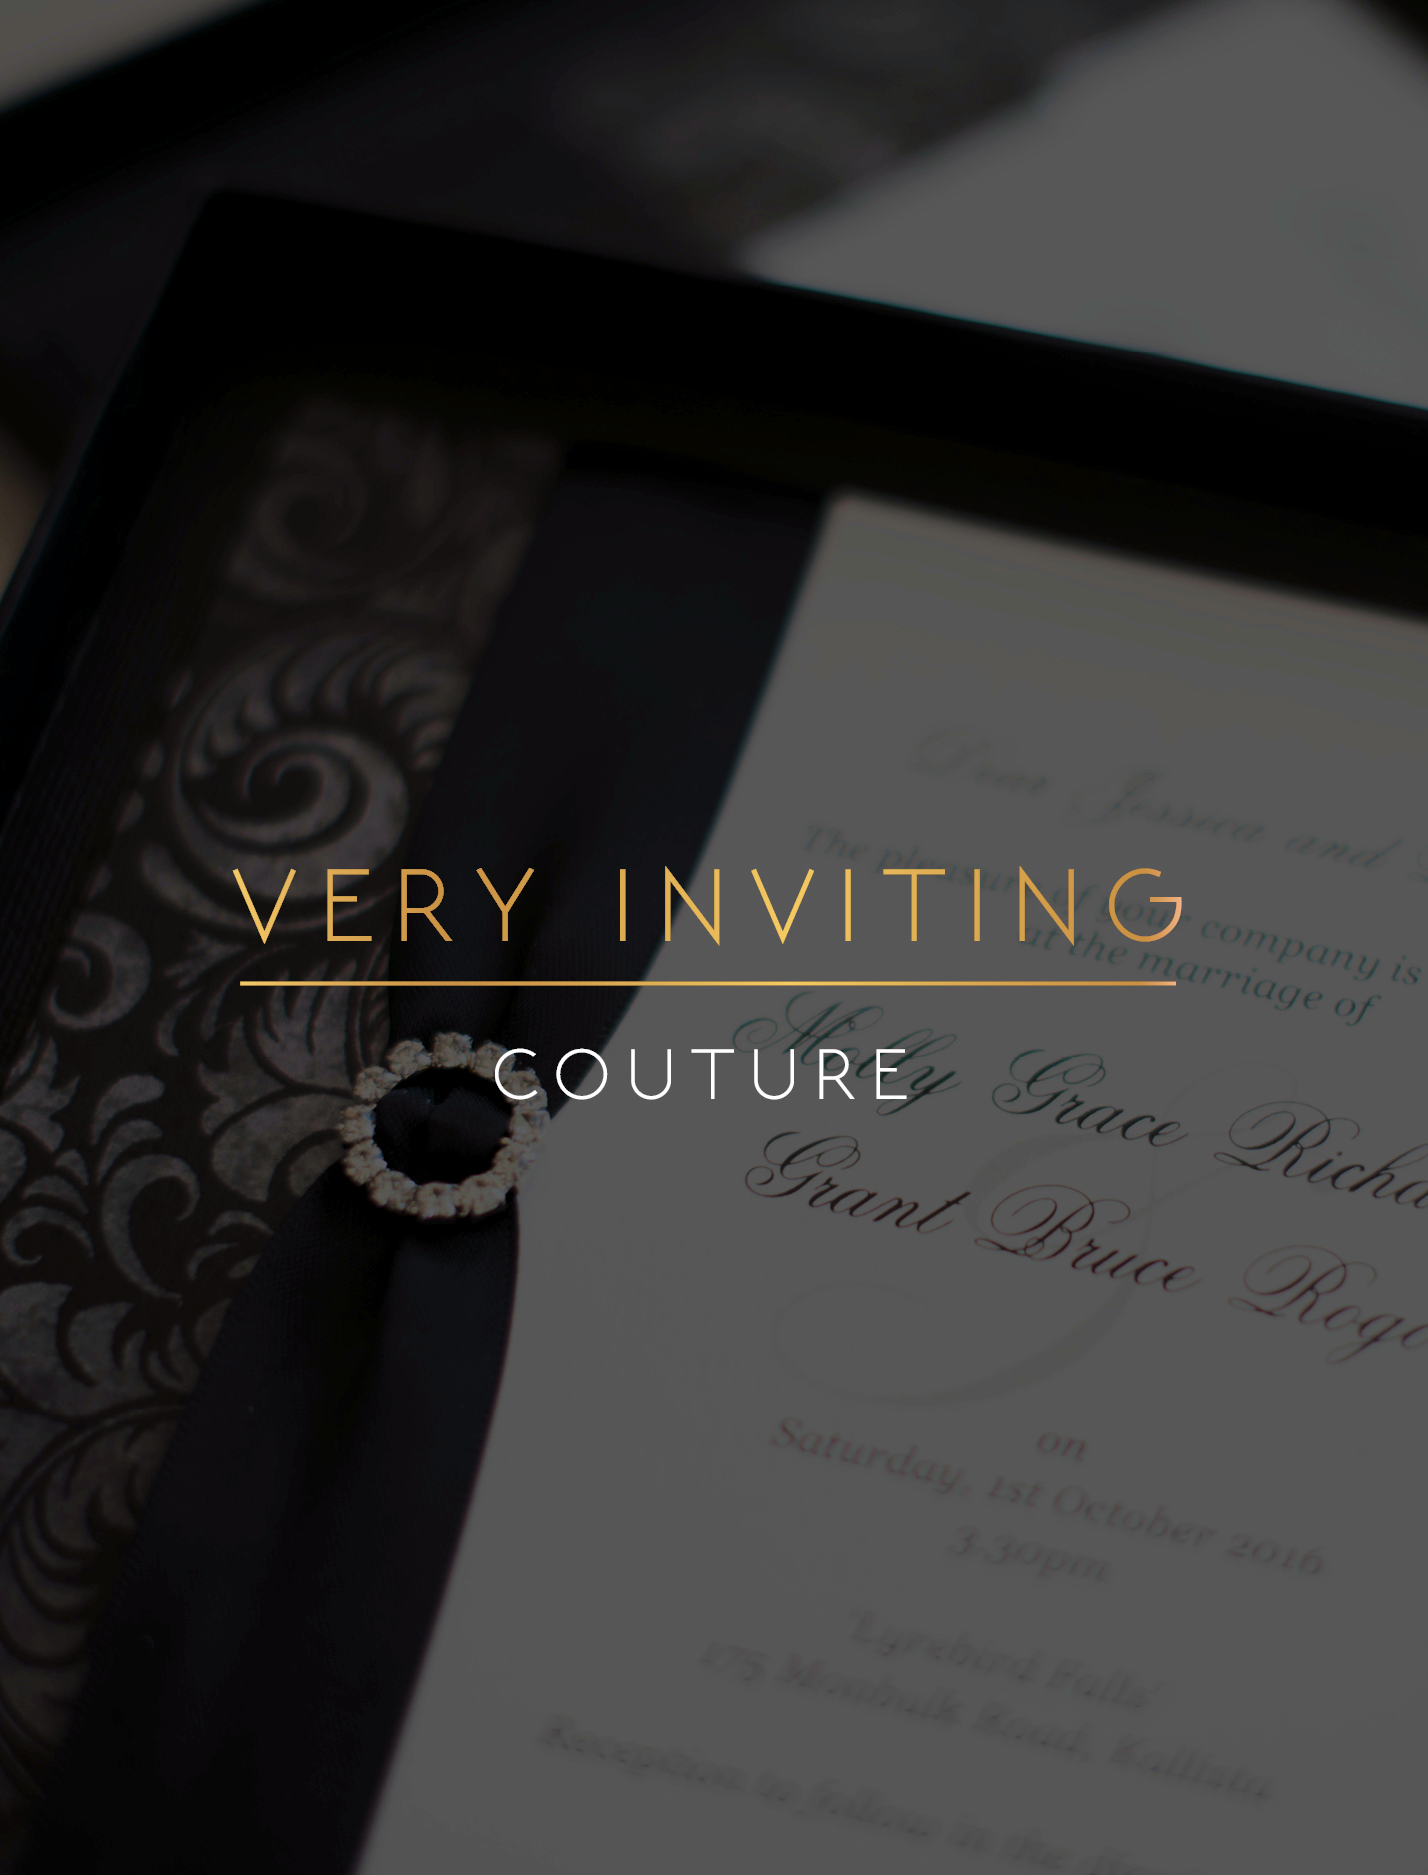 Very Inviting Couture Invitations Melbourne - Very Inviting Invitations Melbourne